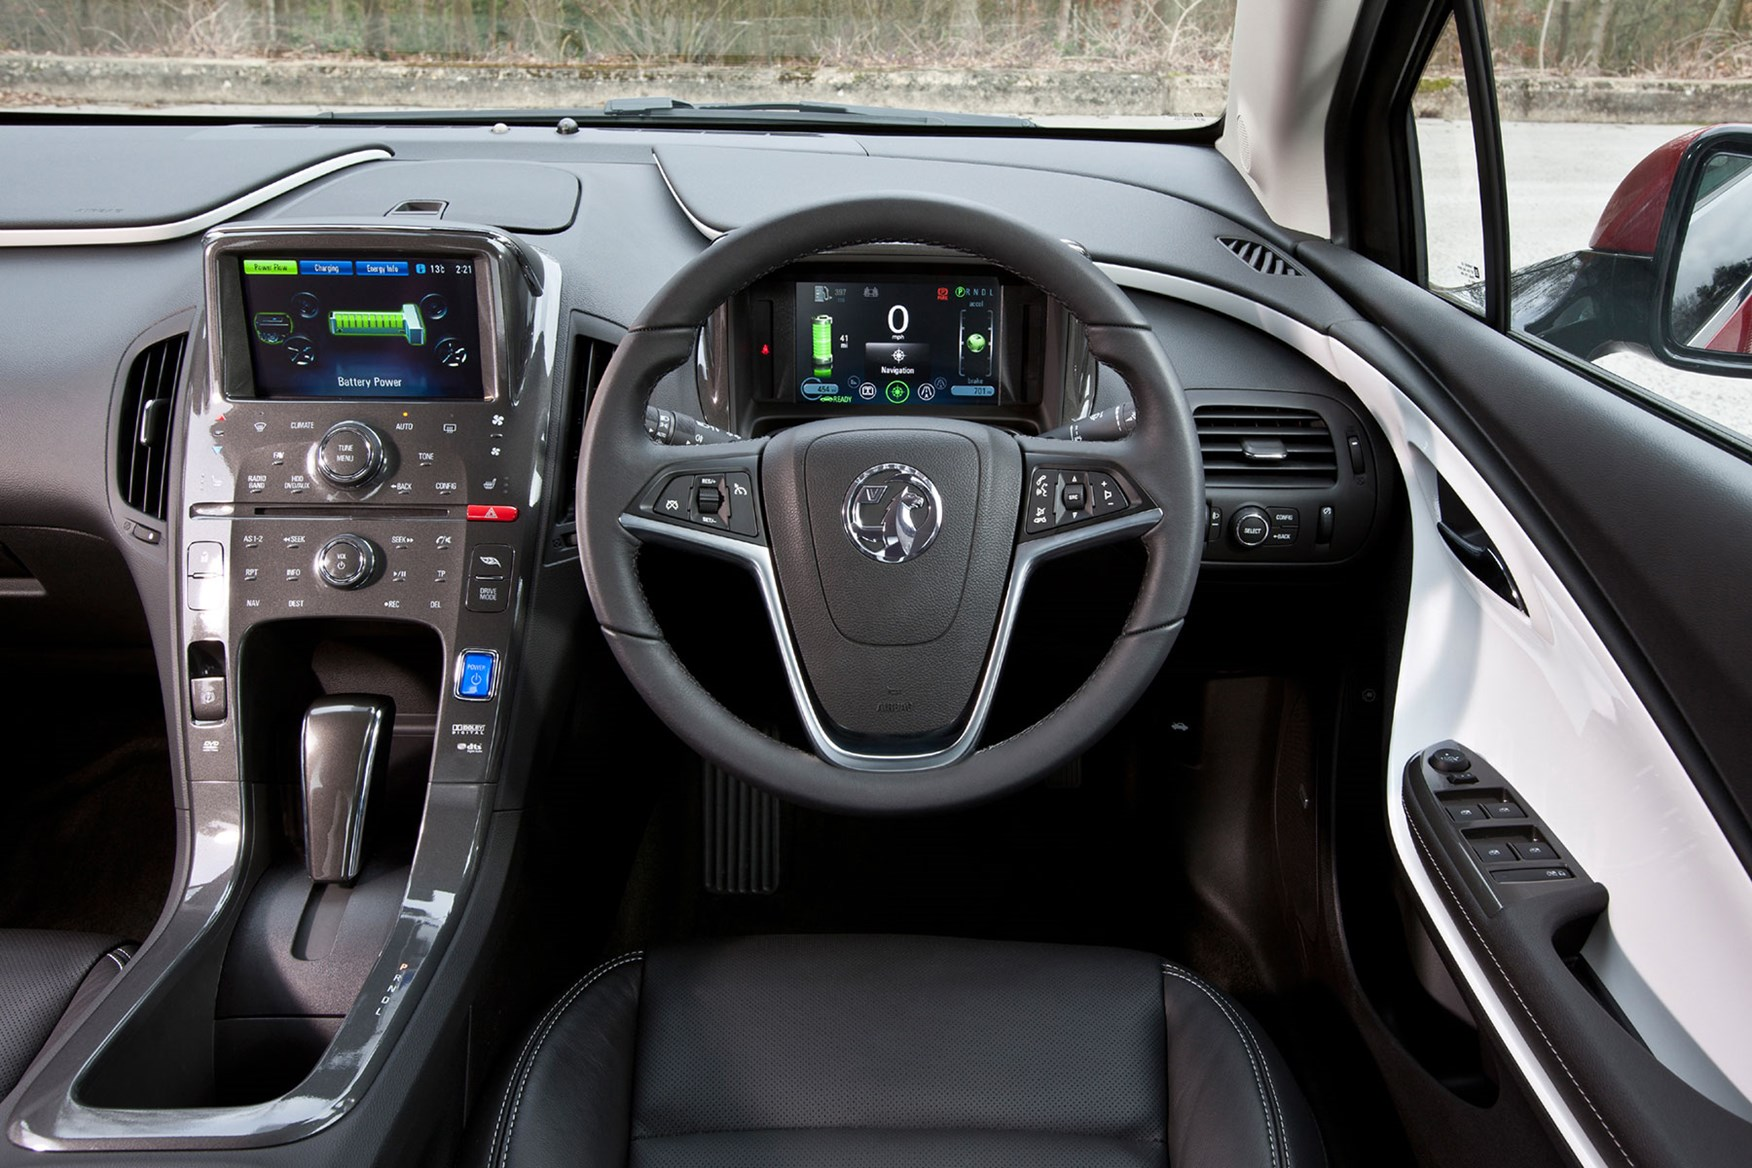 2014 Vauxhall Ampera dashboard, white accents, touch sensitive controls, Electron or Positiv trim